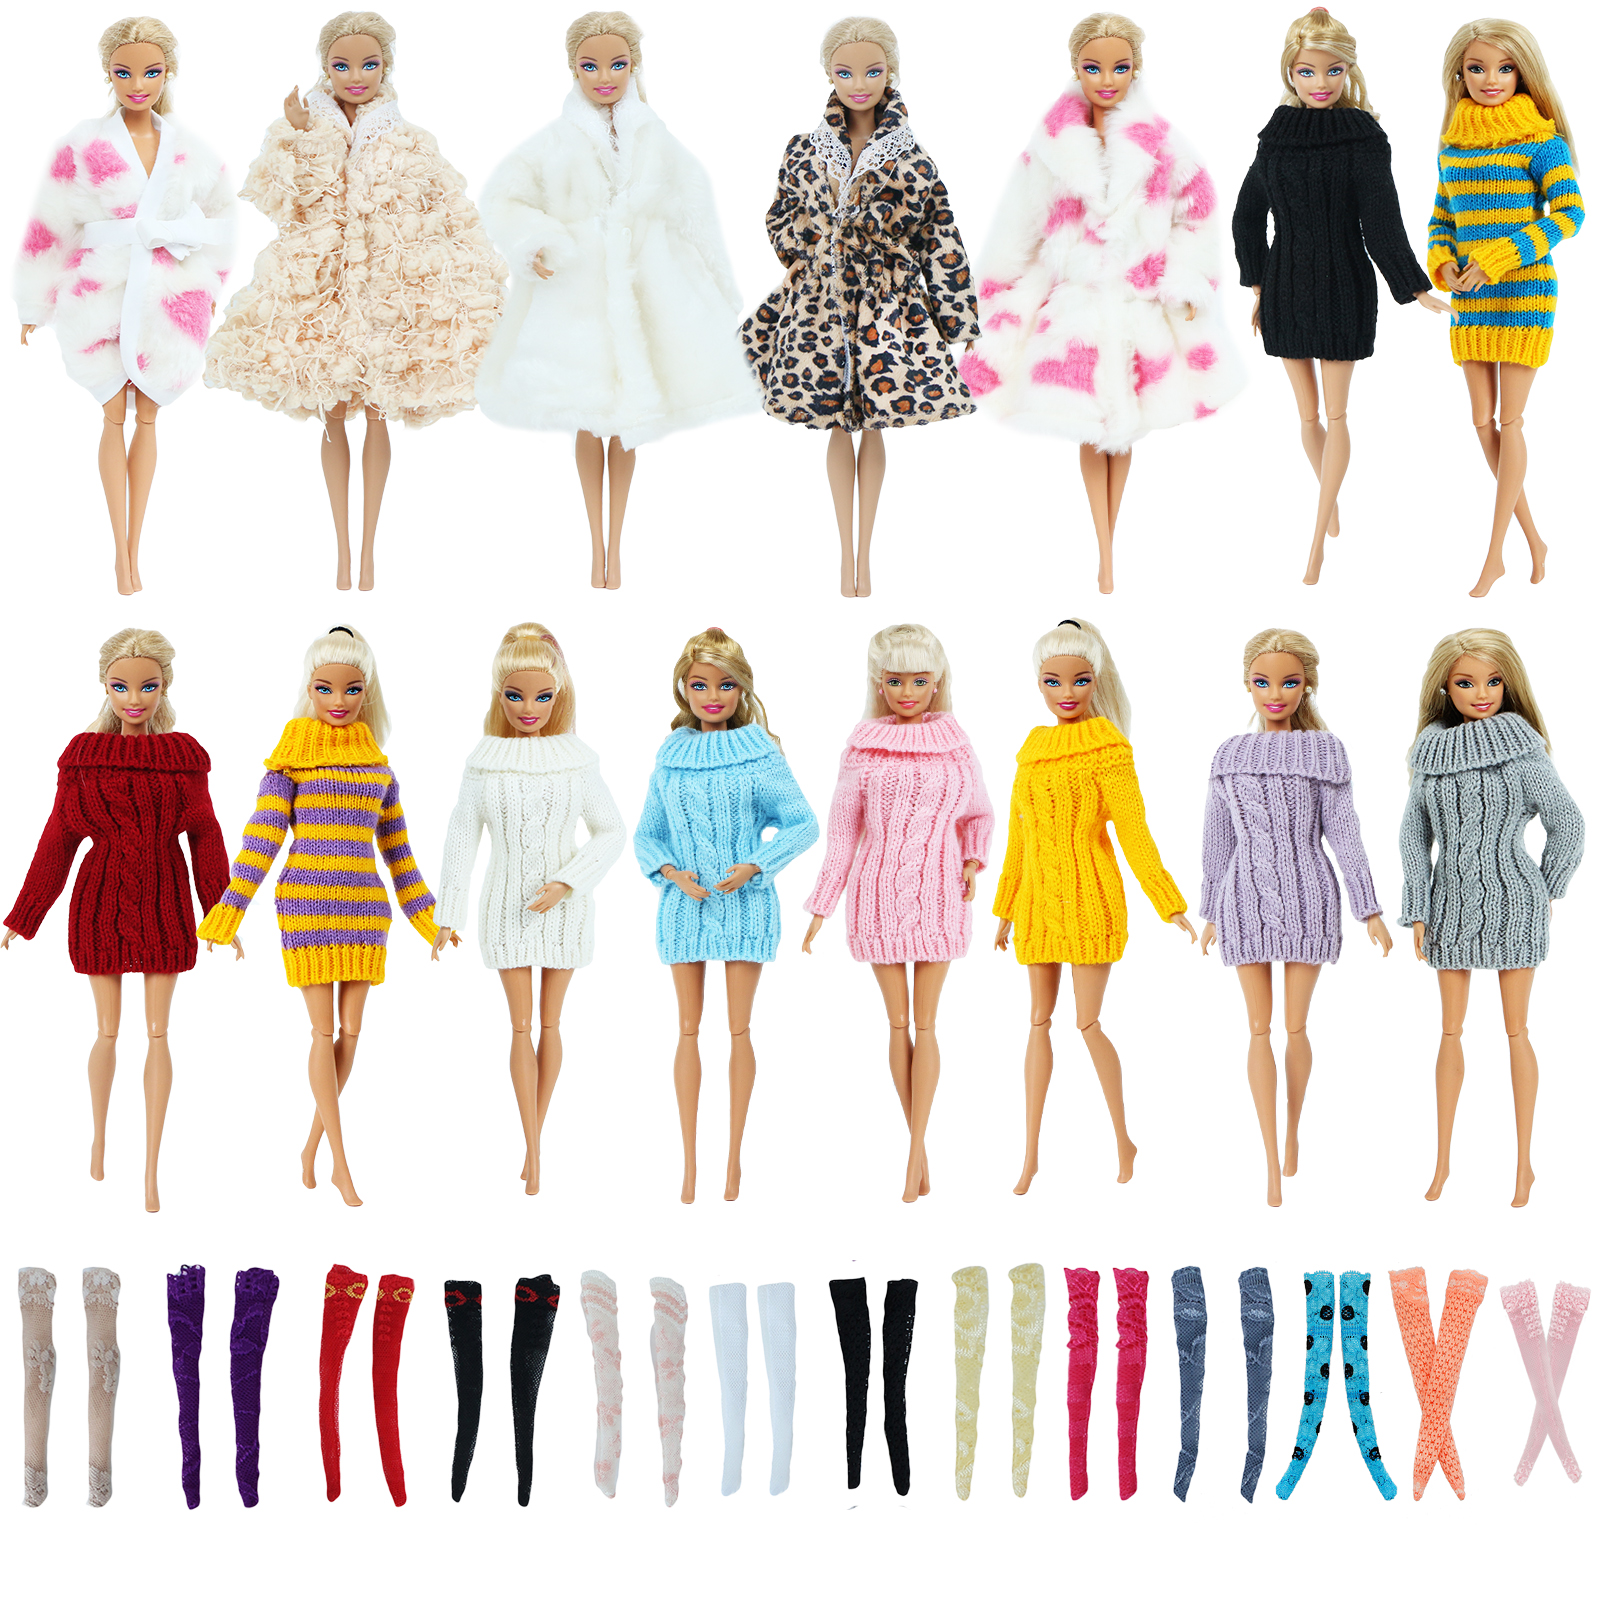 5 Pcs / Set Fashion Winter Outfit For Barbie Doll 1x Coat 1x Sweater Random Mixed 3x Stockings Clothes Accessories Toy 12'' Doll